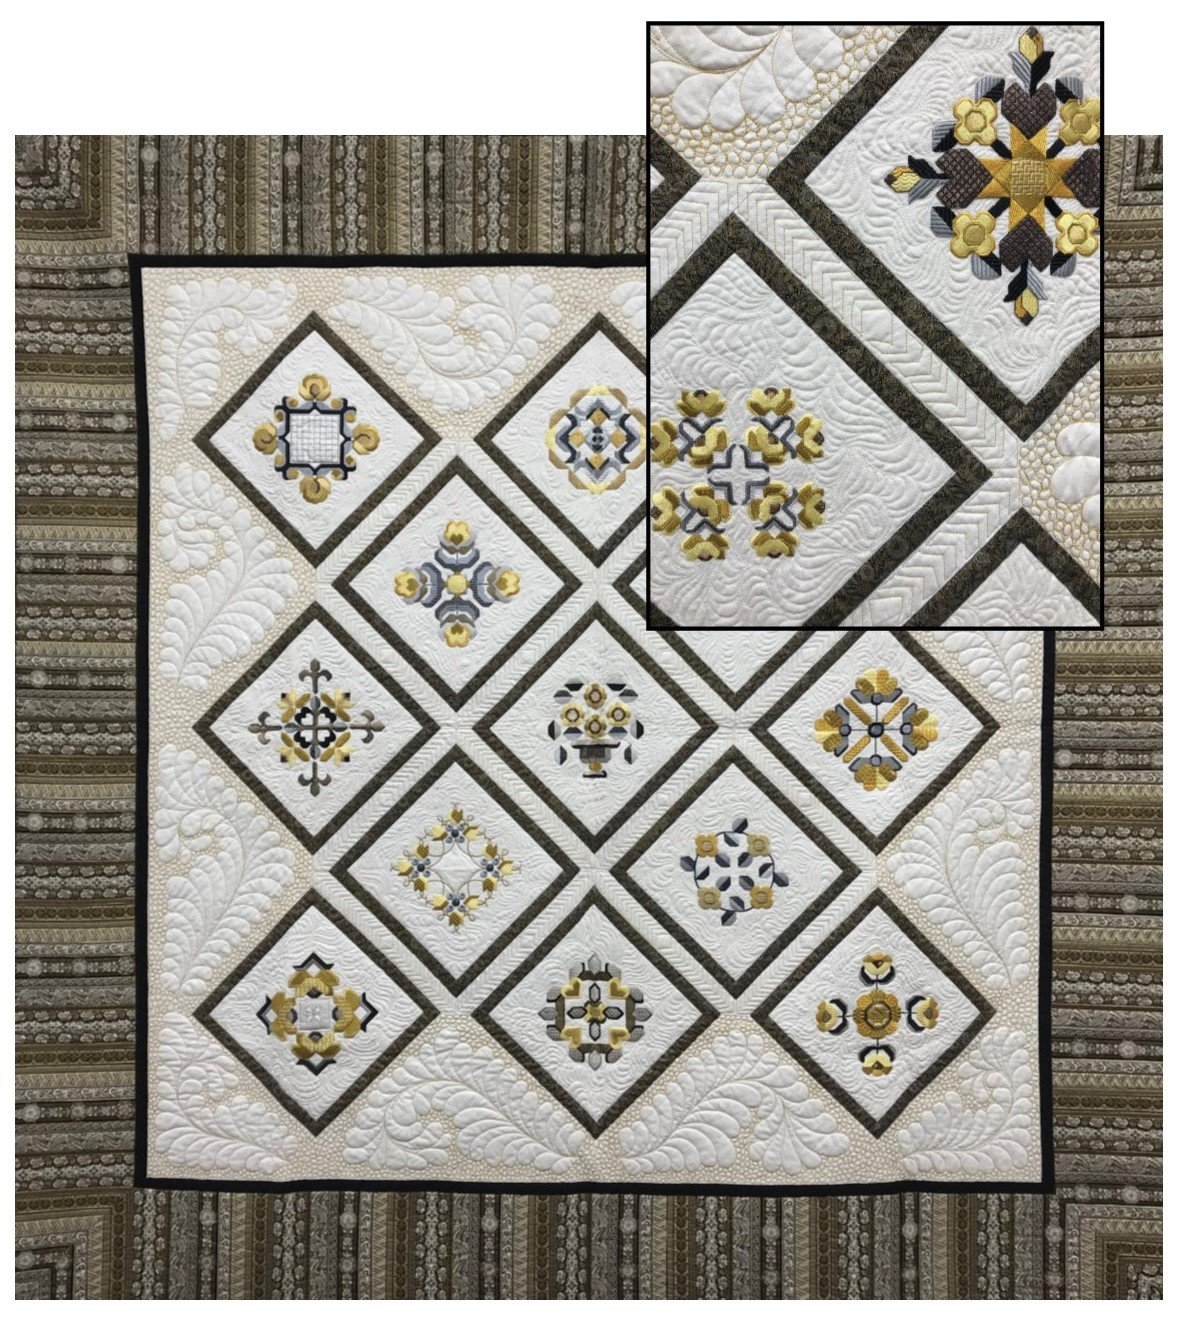 Gold Medallion Baltimore Album Quilt by John James on exhibit at Quilting Foxes, with closeup inset.